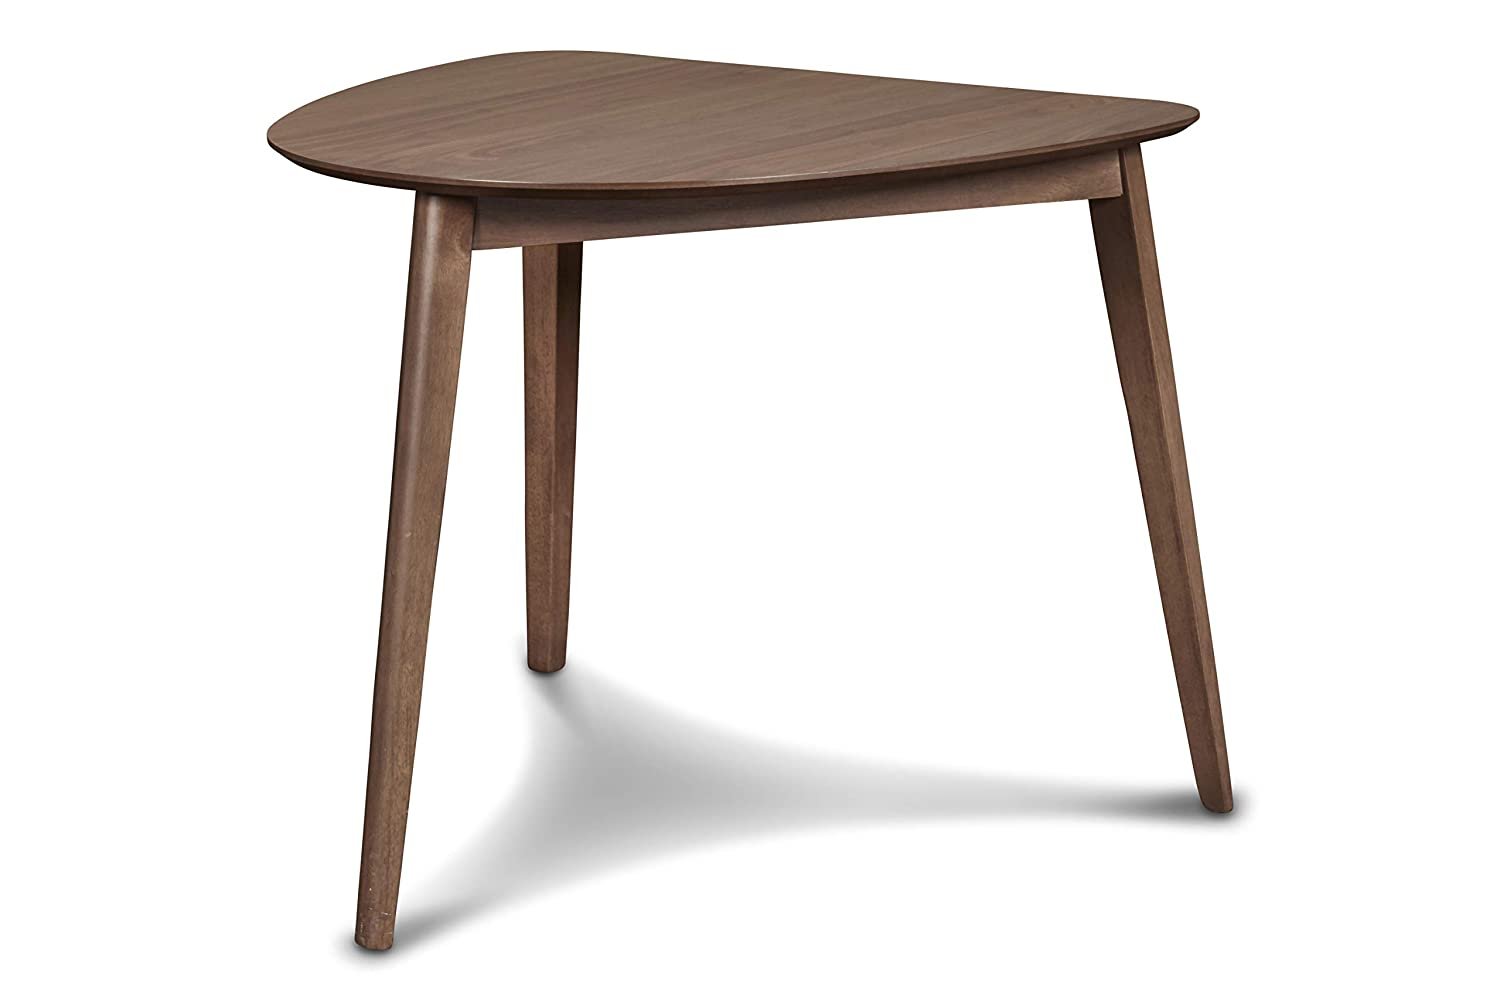 New Classic Furniture D1651-13 Mid-Century Modern Oscar Corner Table, Walnut